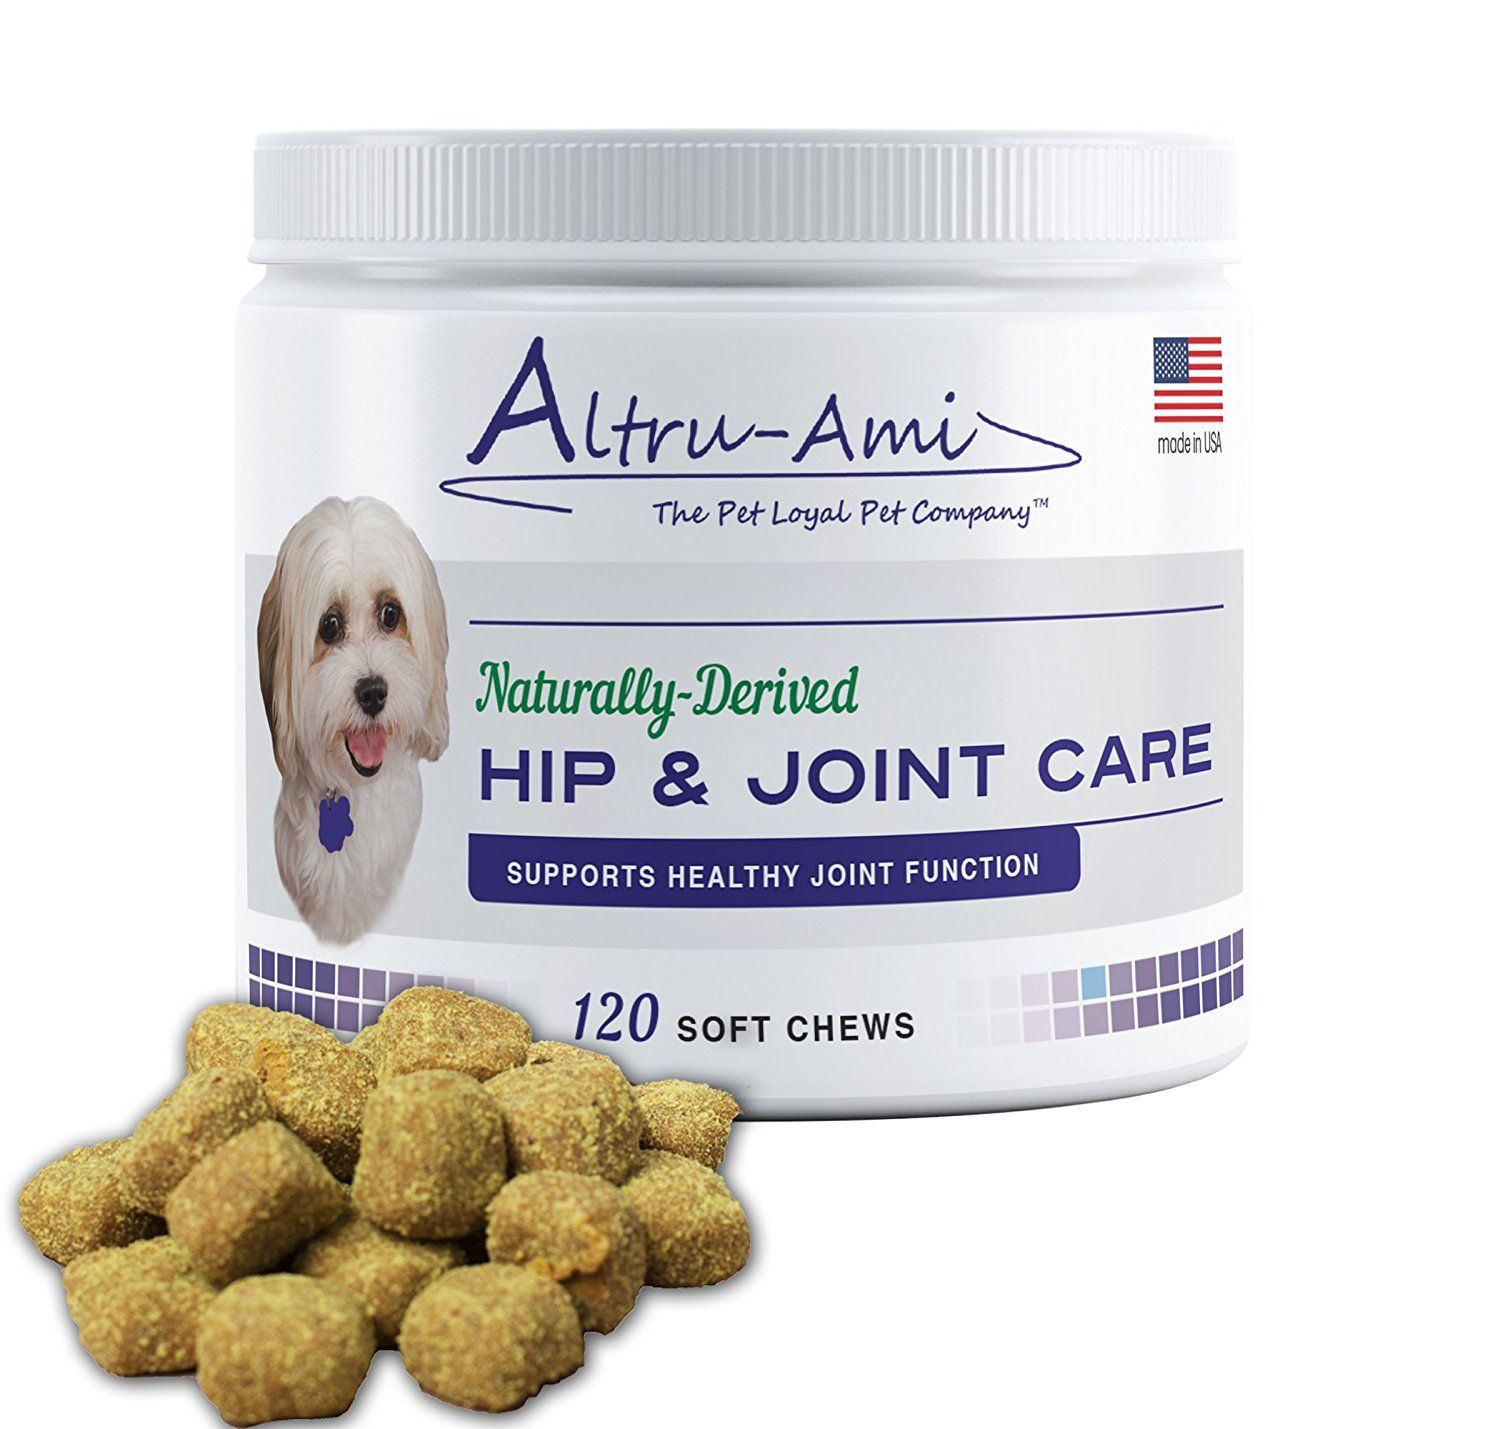 Glucosamine Chondroitin For Dogs By Altru Ami Advanced Hip And